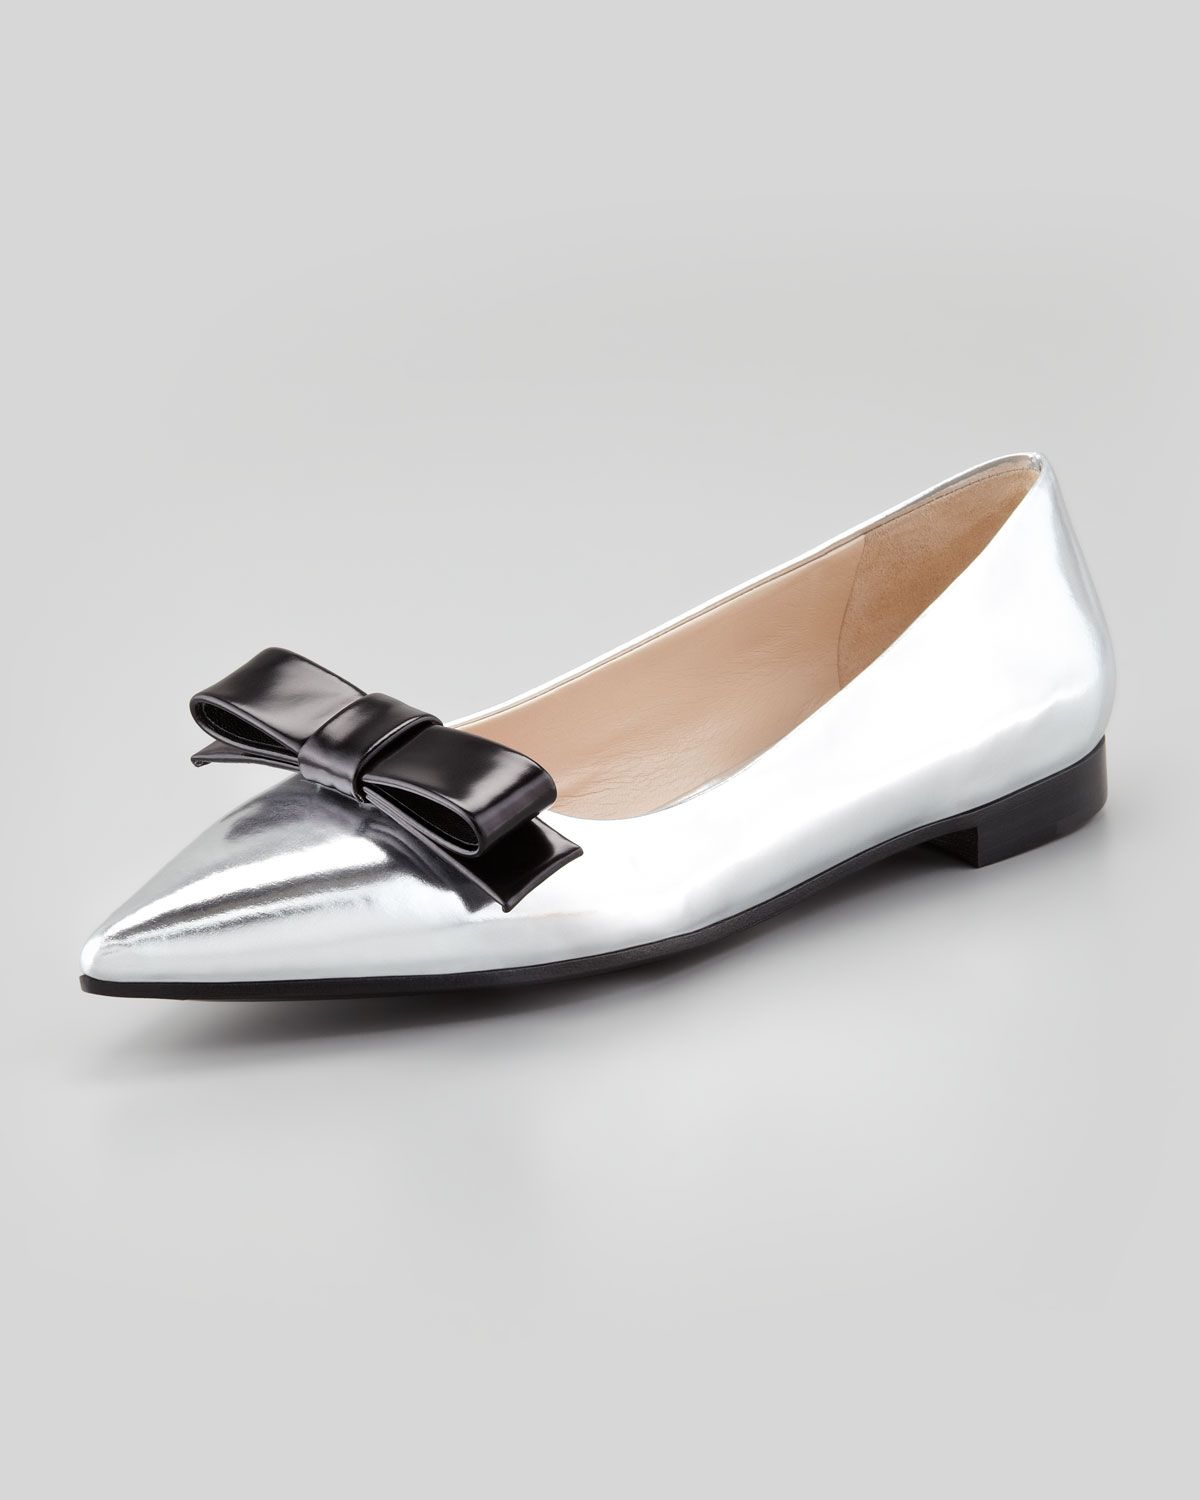 Prada Metallic Pointed-Toe Flats Red pre order eastbay purchase cheap online cheap sale for sale E2lWSX